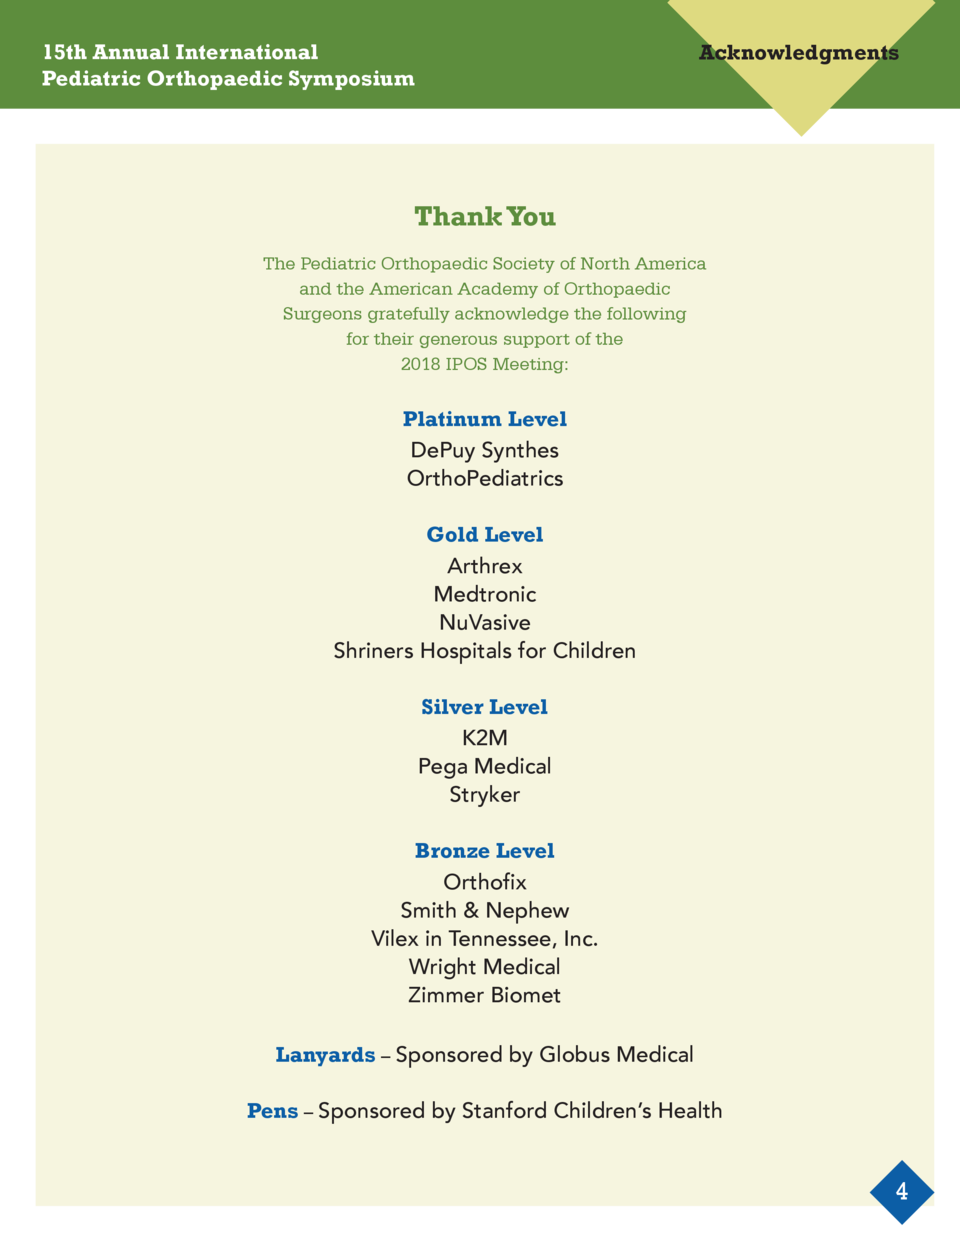 15th Annual International Pediatric Orthopaedic Symposium  Acknowledgments  Thank You The Pediatric Orthopaedic Society of...